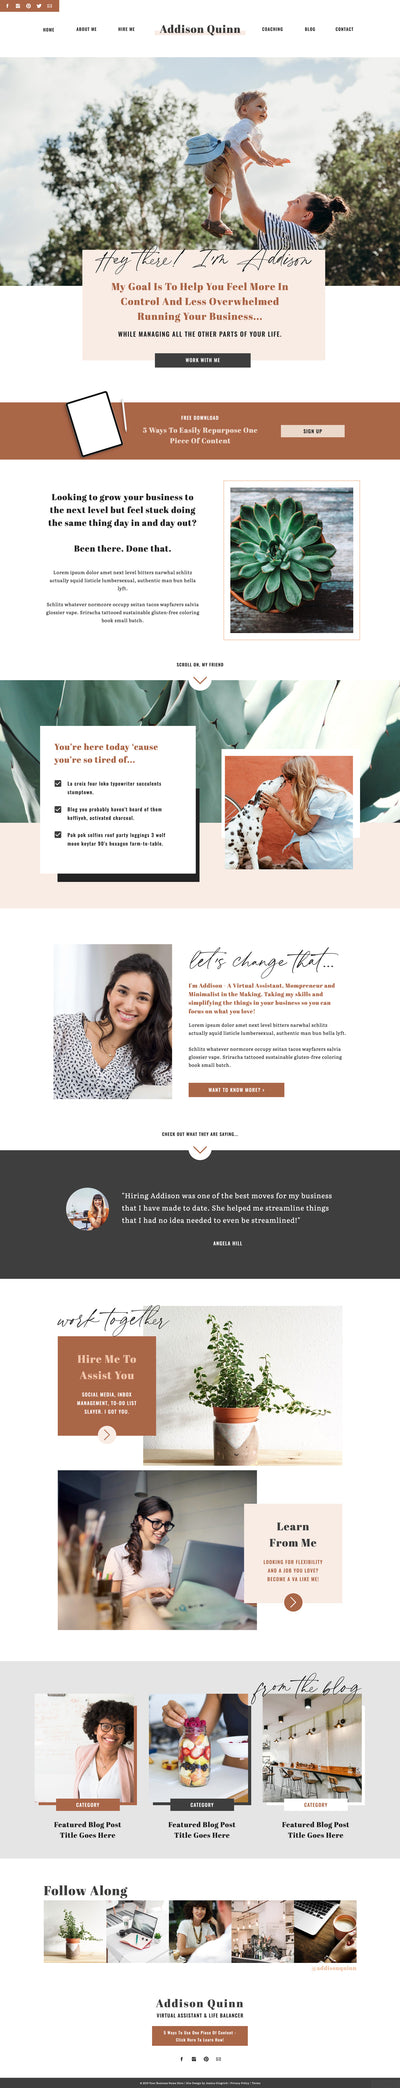 """Addison Quinn"" Showit Template - jessica gingrich"